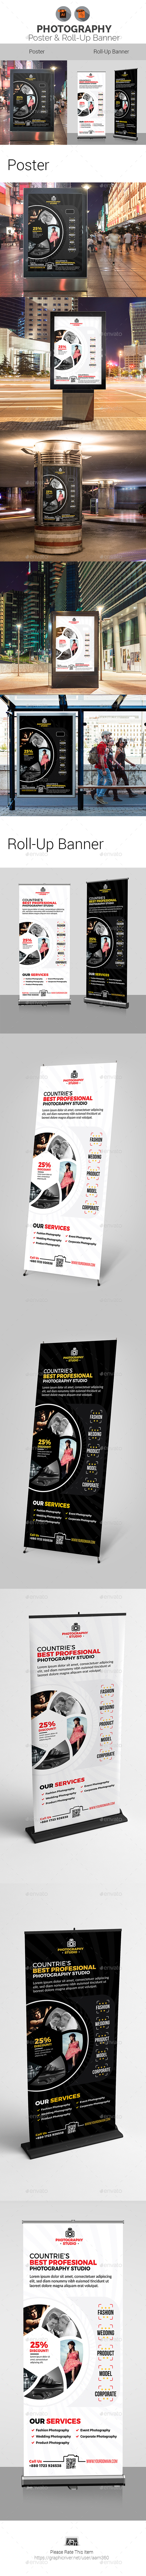 Photography Poster & Rollup Banner - Signage Print Templates